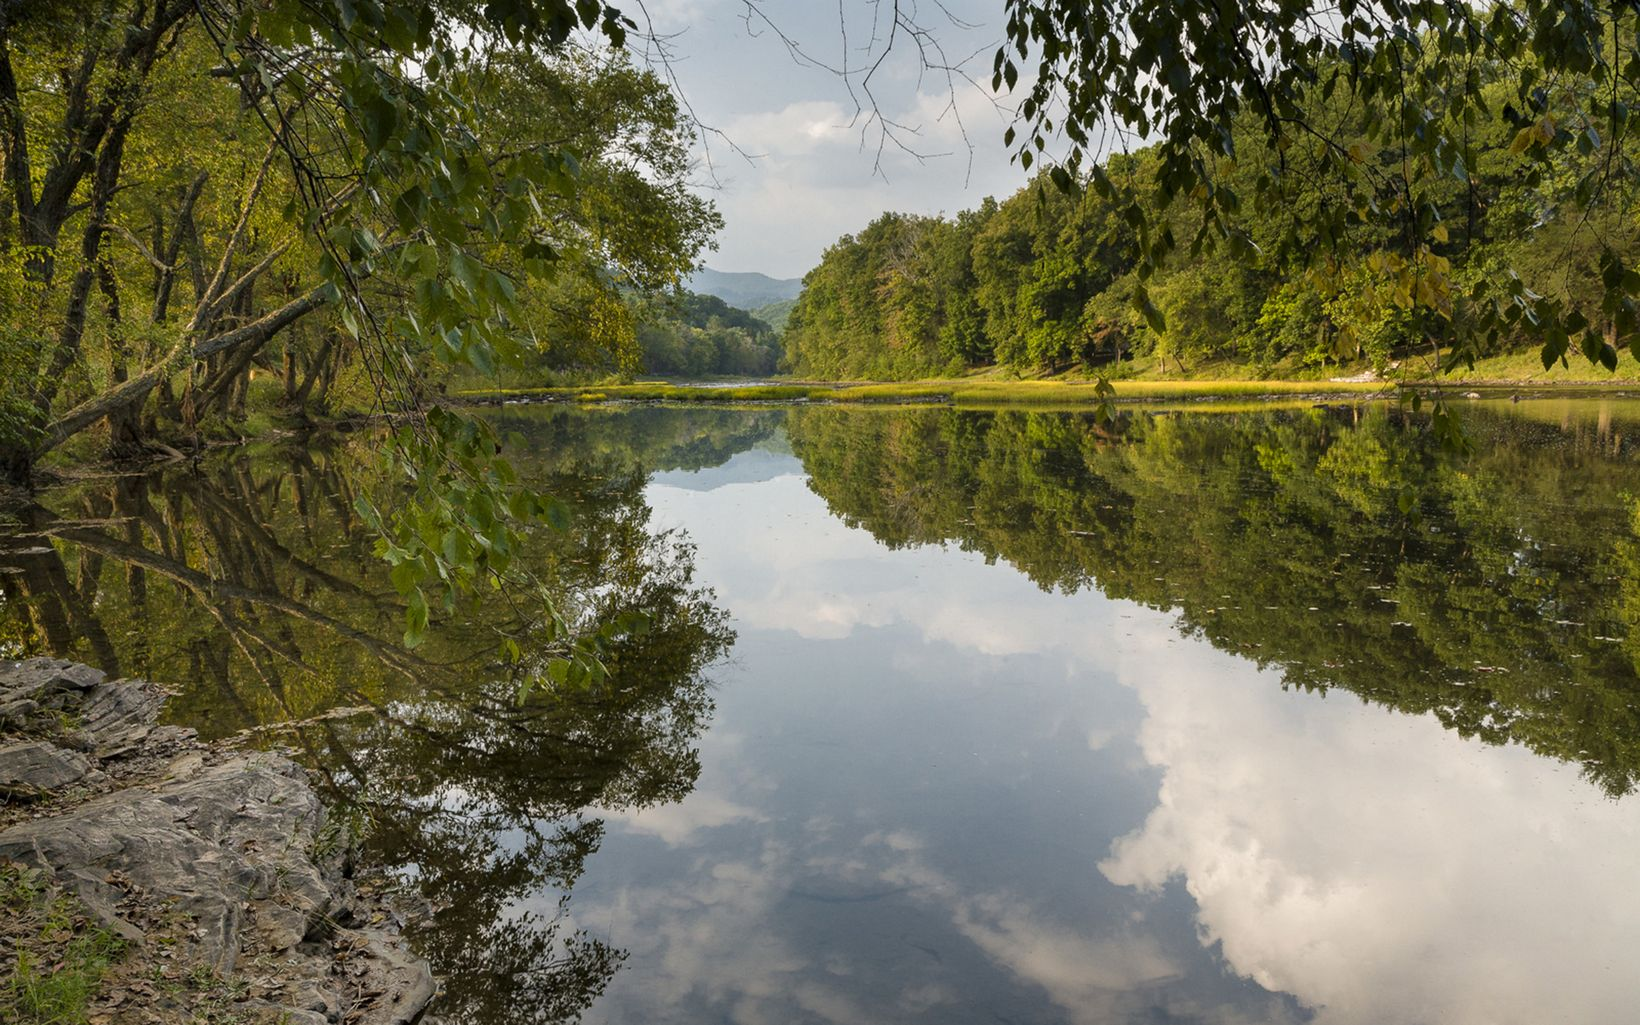 View of the Greenbrier River in West Virginia with refl